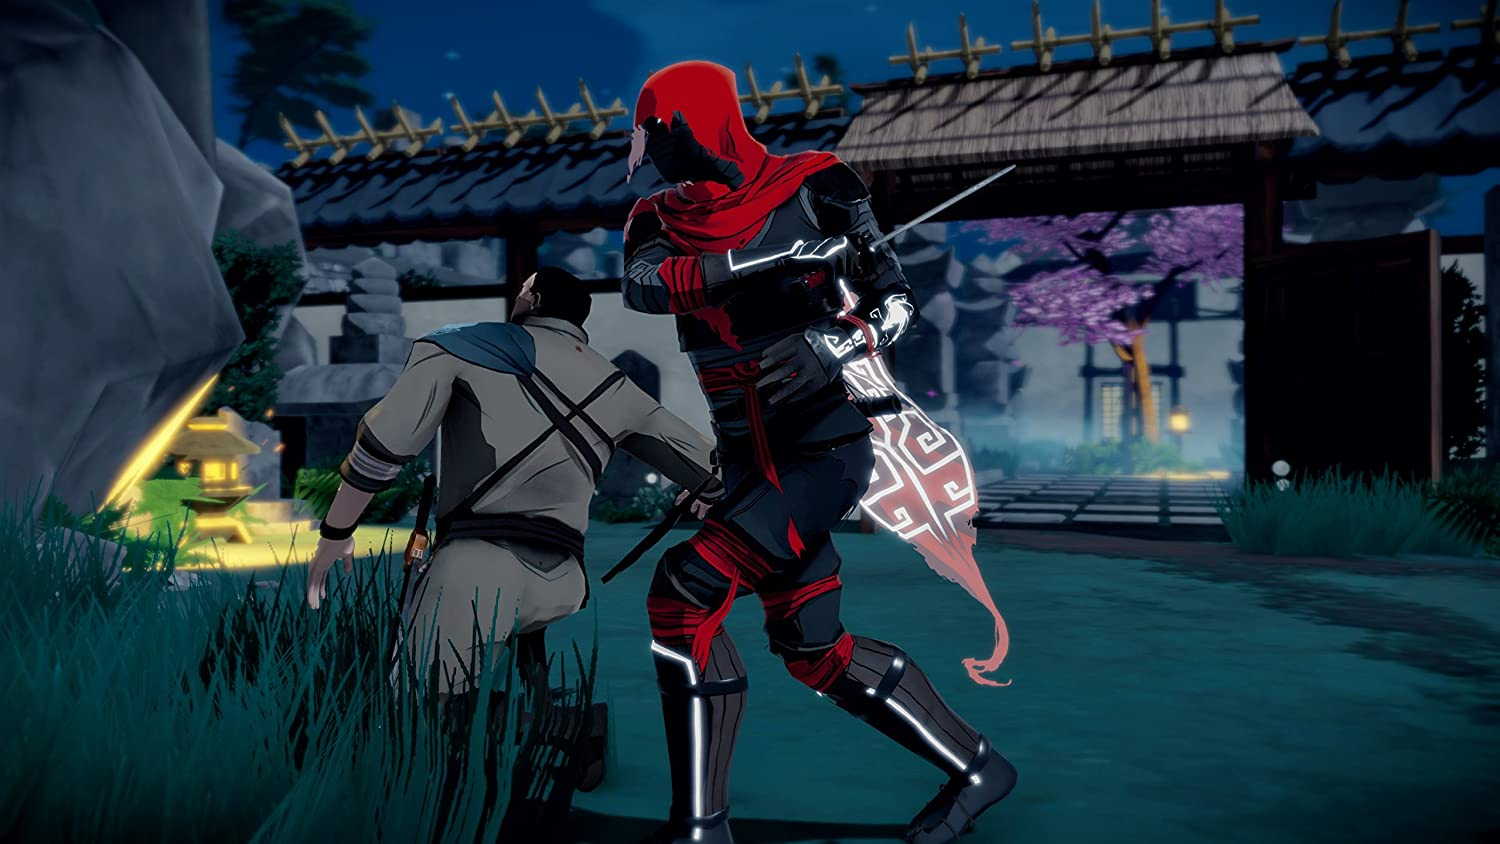 Amazon.com: Aragami: Collectors Edition - PlayStation 4 ...